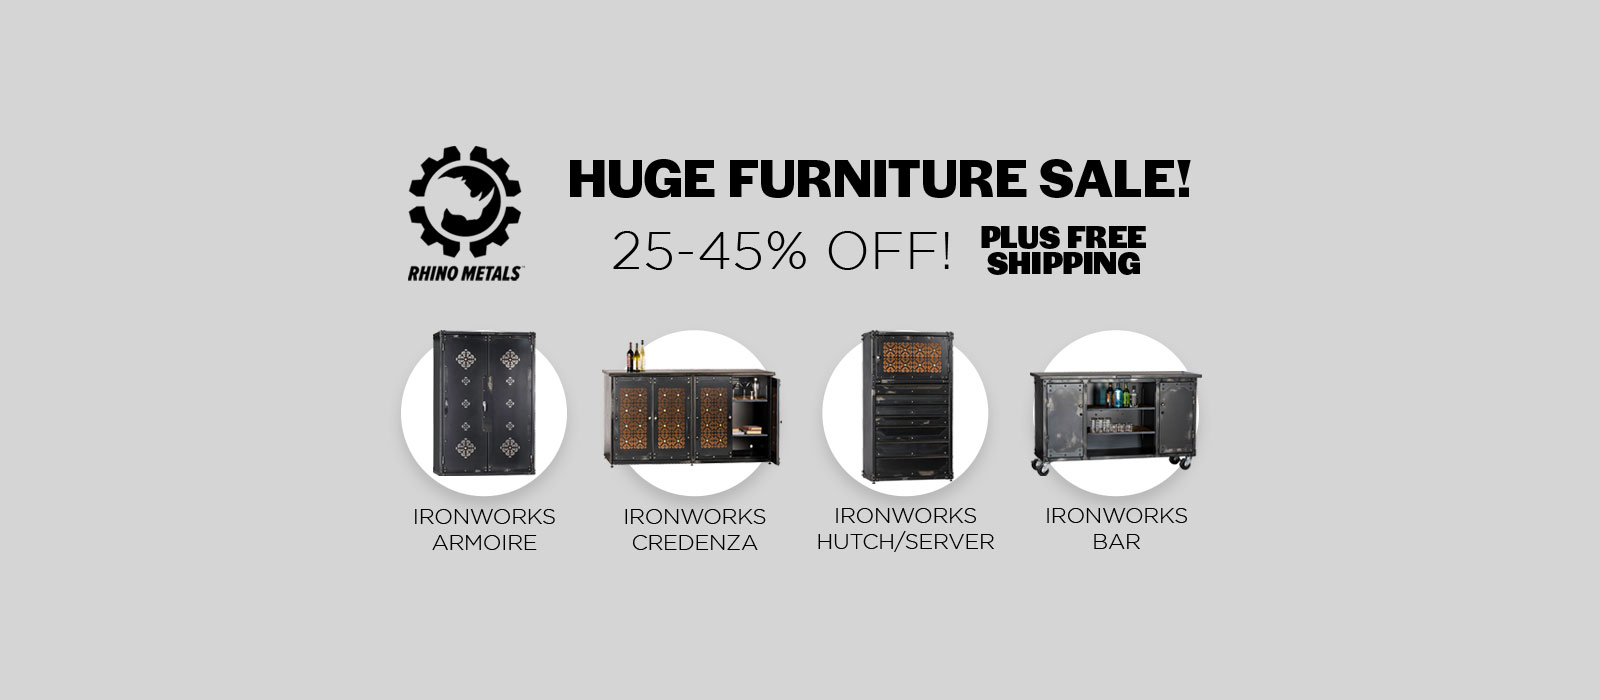 Huge Furniture Sale! - Up to 45% off Plus free shipping!